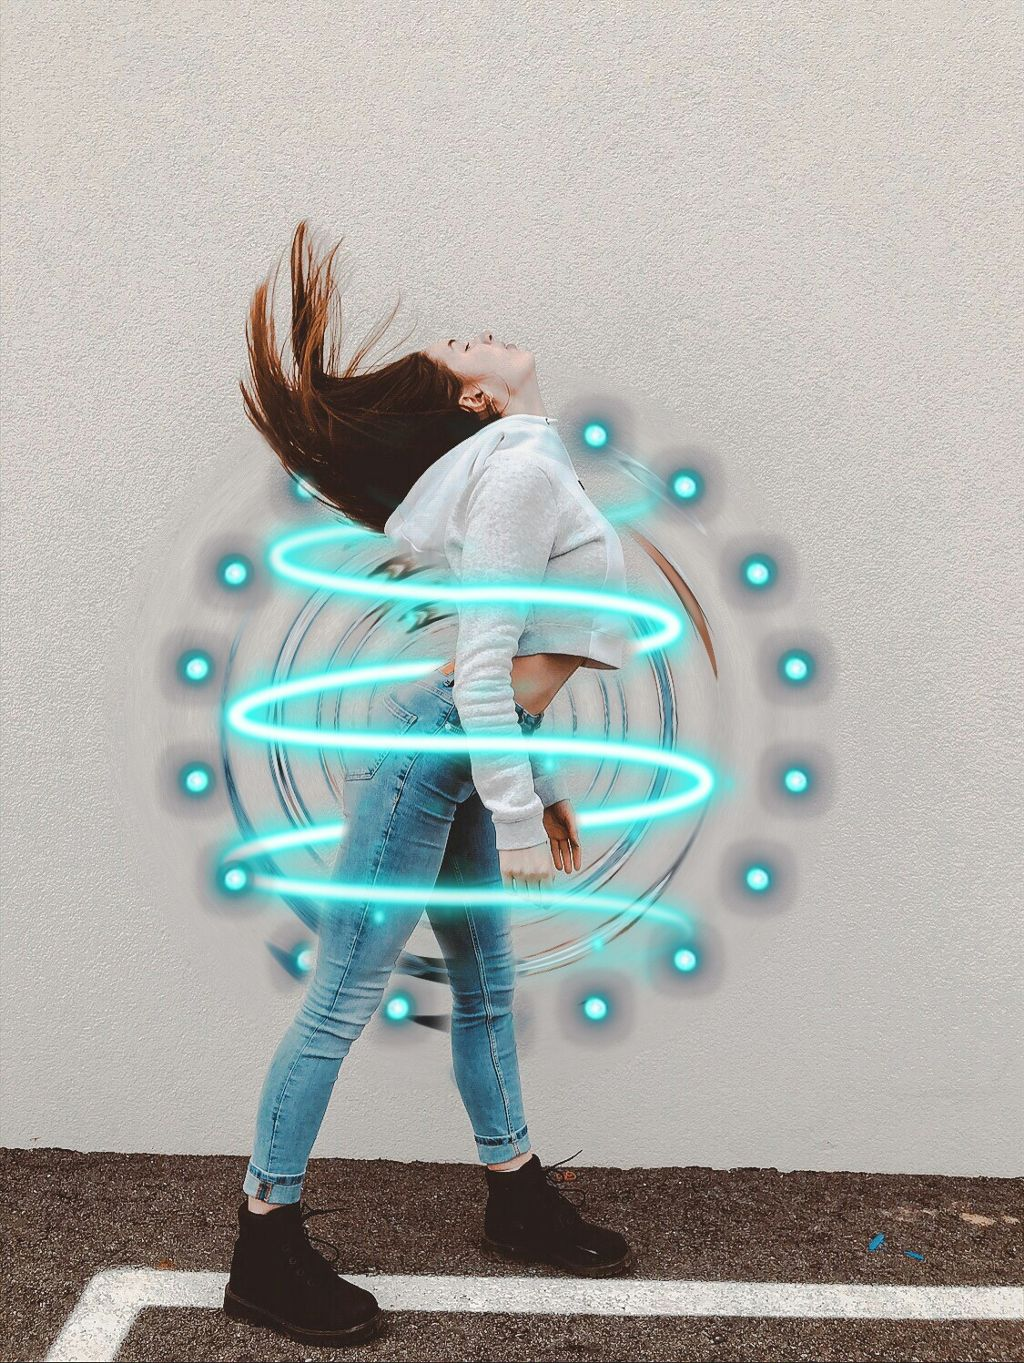 #freetoedit #tumblr #chica #chicatumblr #espiral #azul #blue